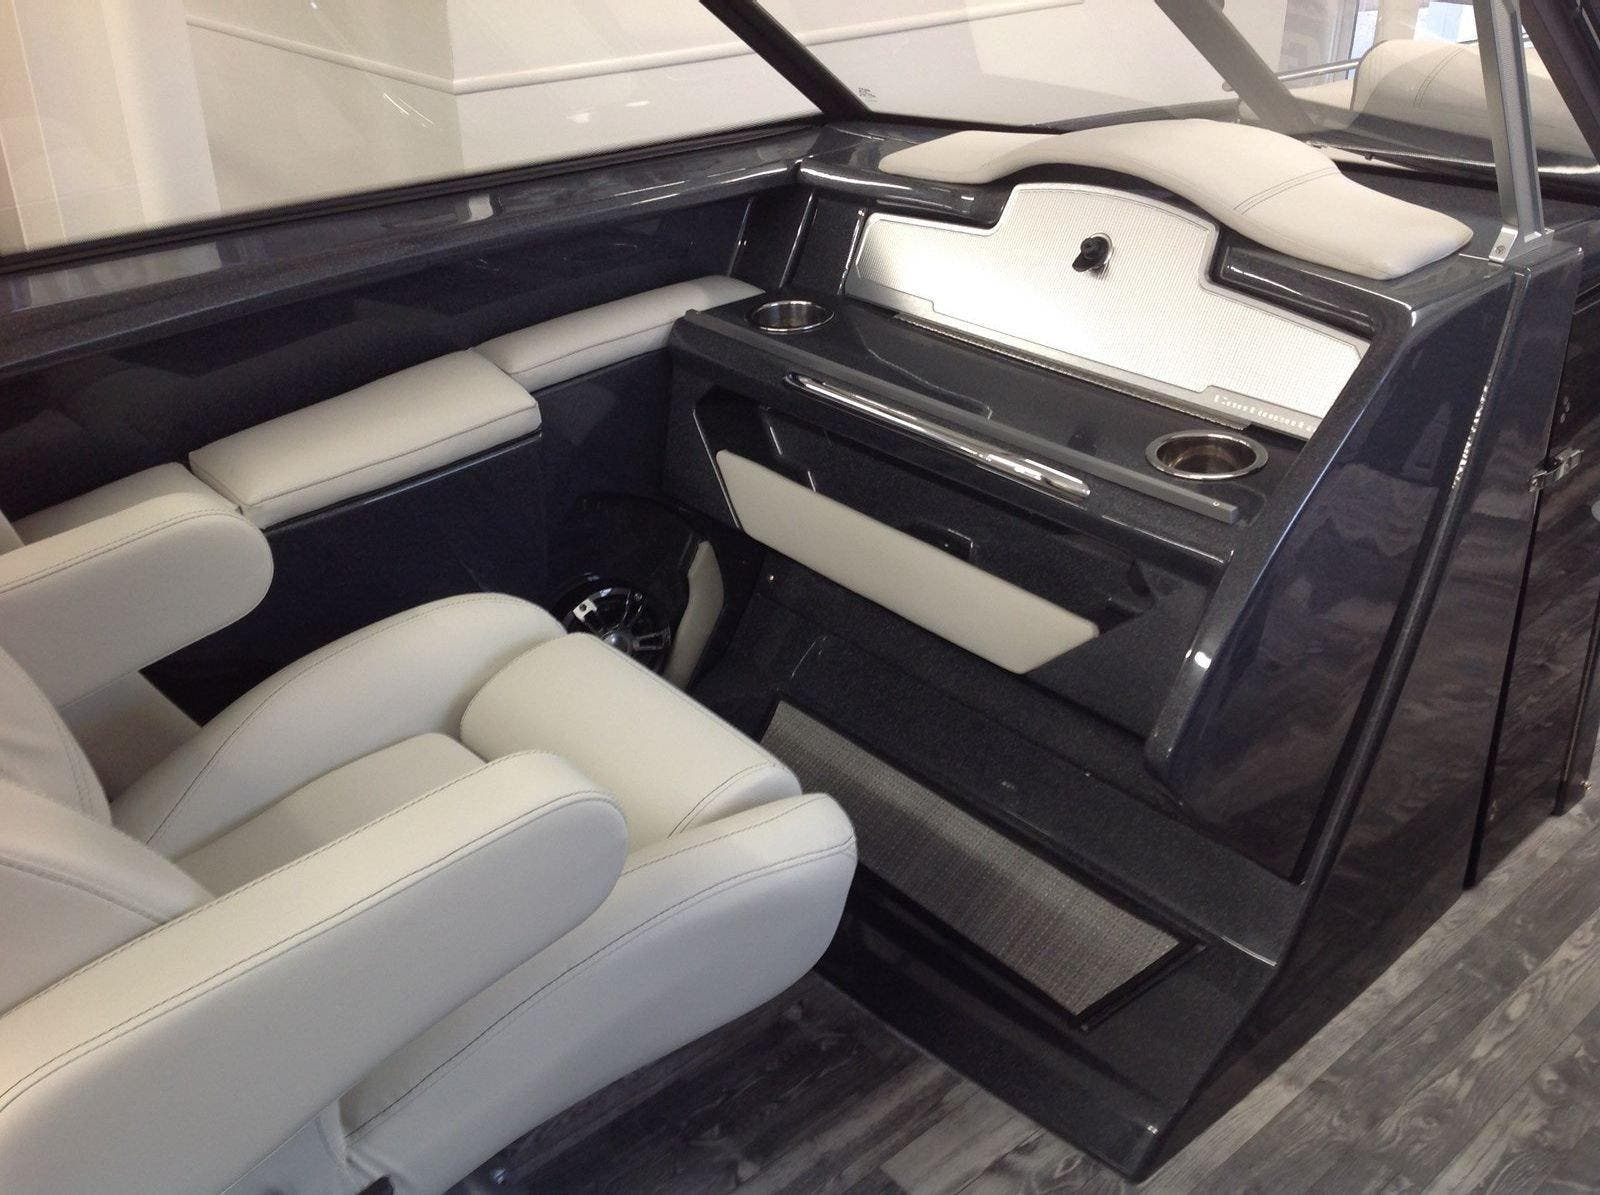 2020 Crest boat for sale, model of the boat is Continental 270sls & Image # 7 of 15